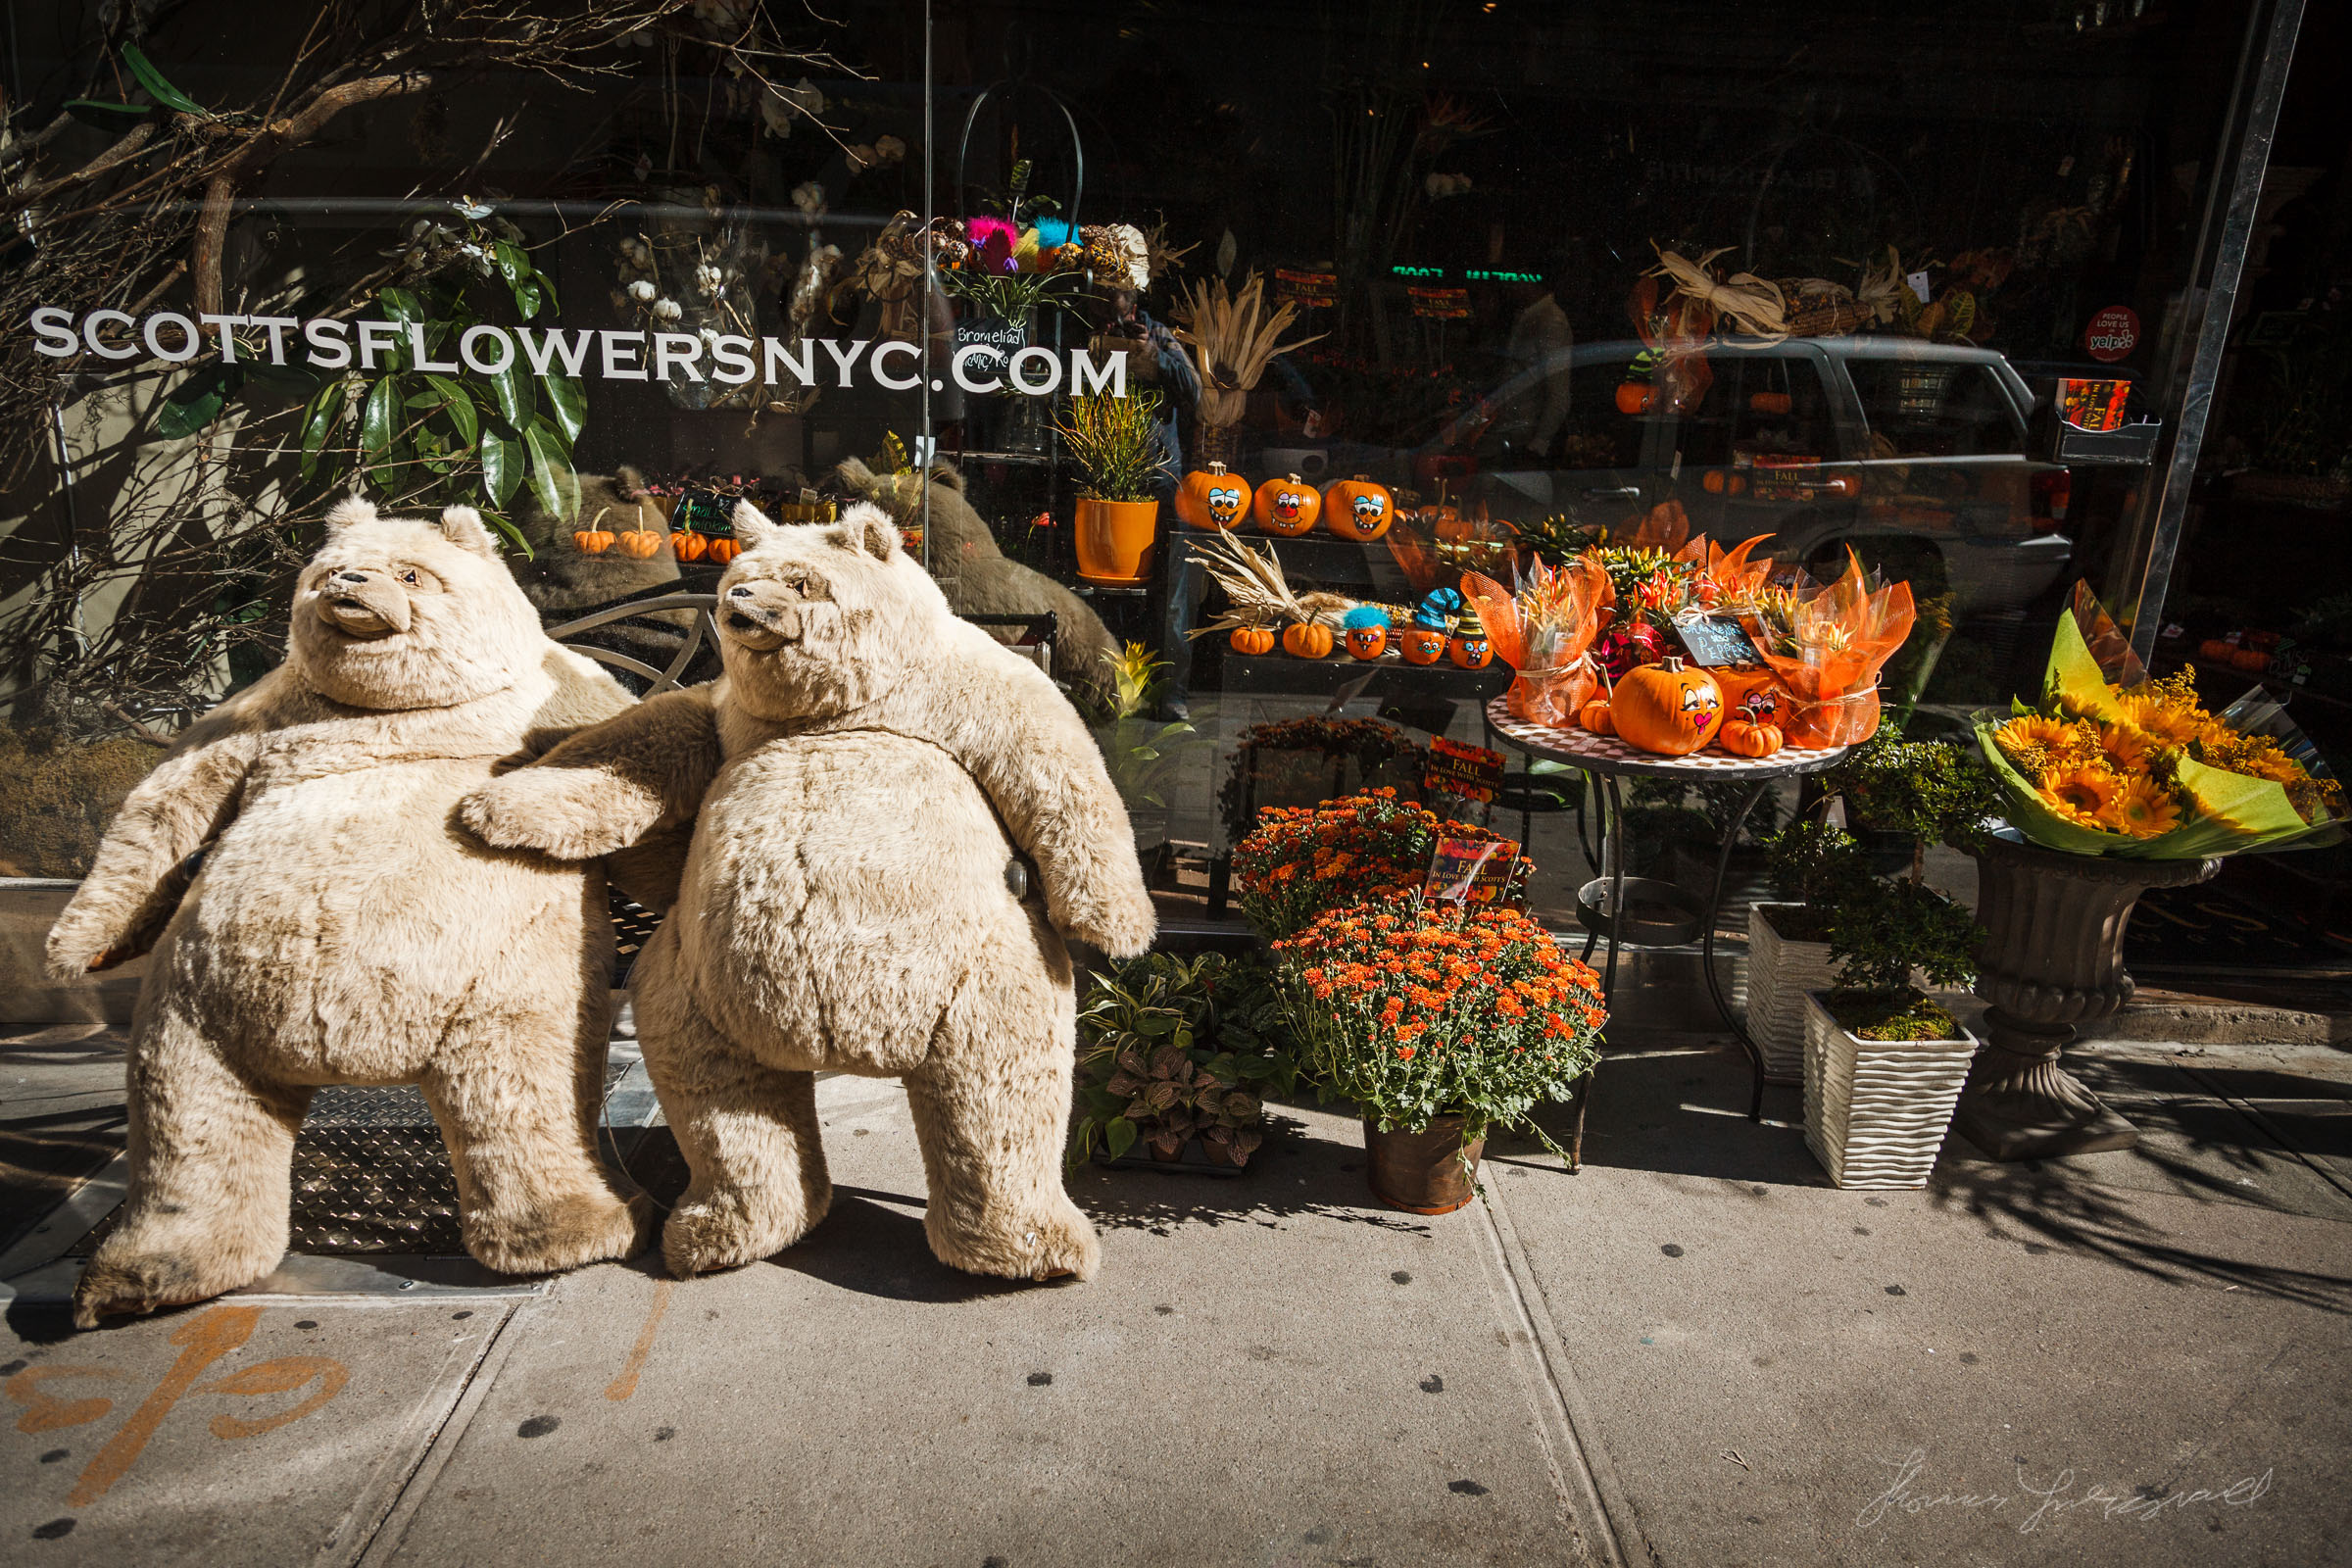 Outside a Flower Shop in New York City